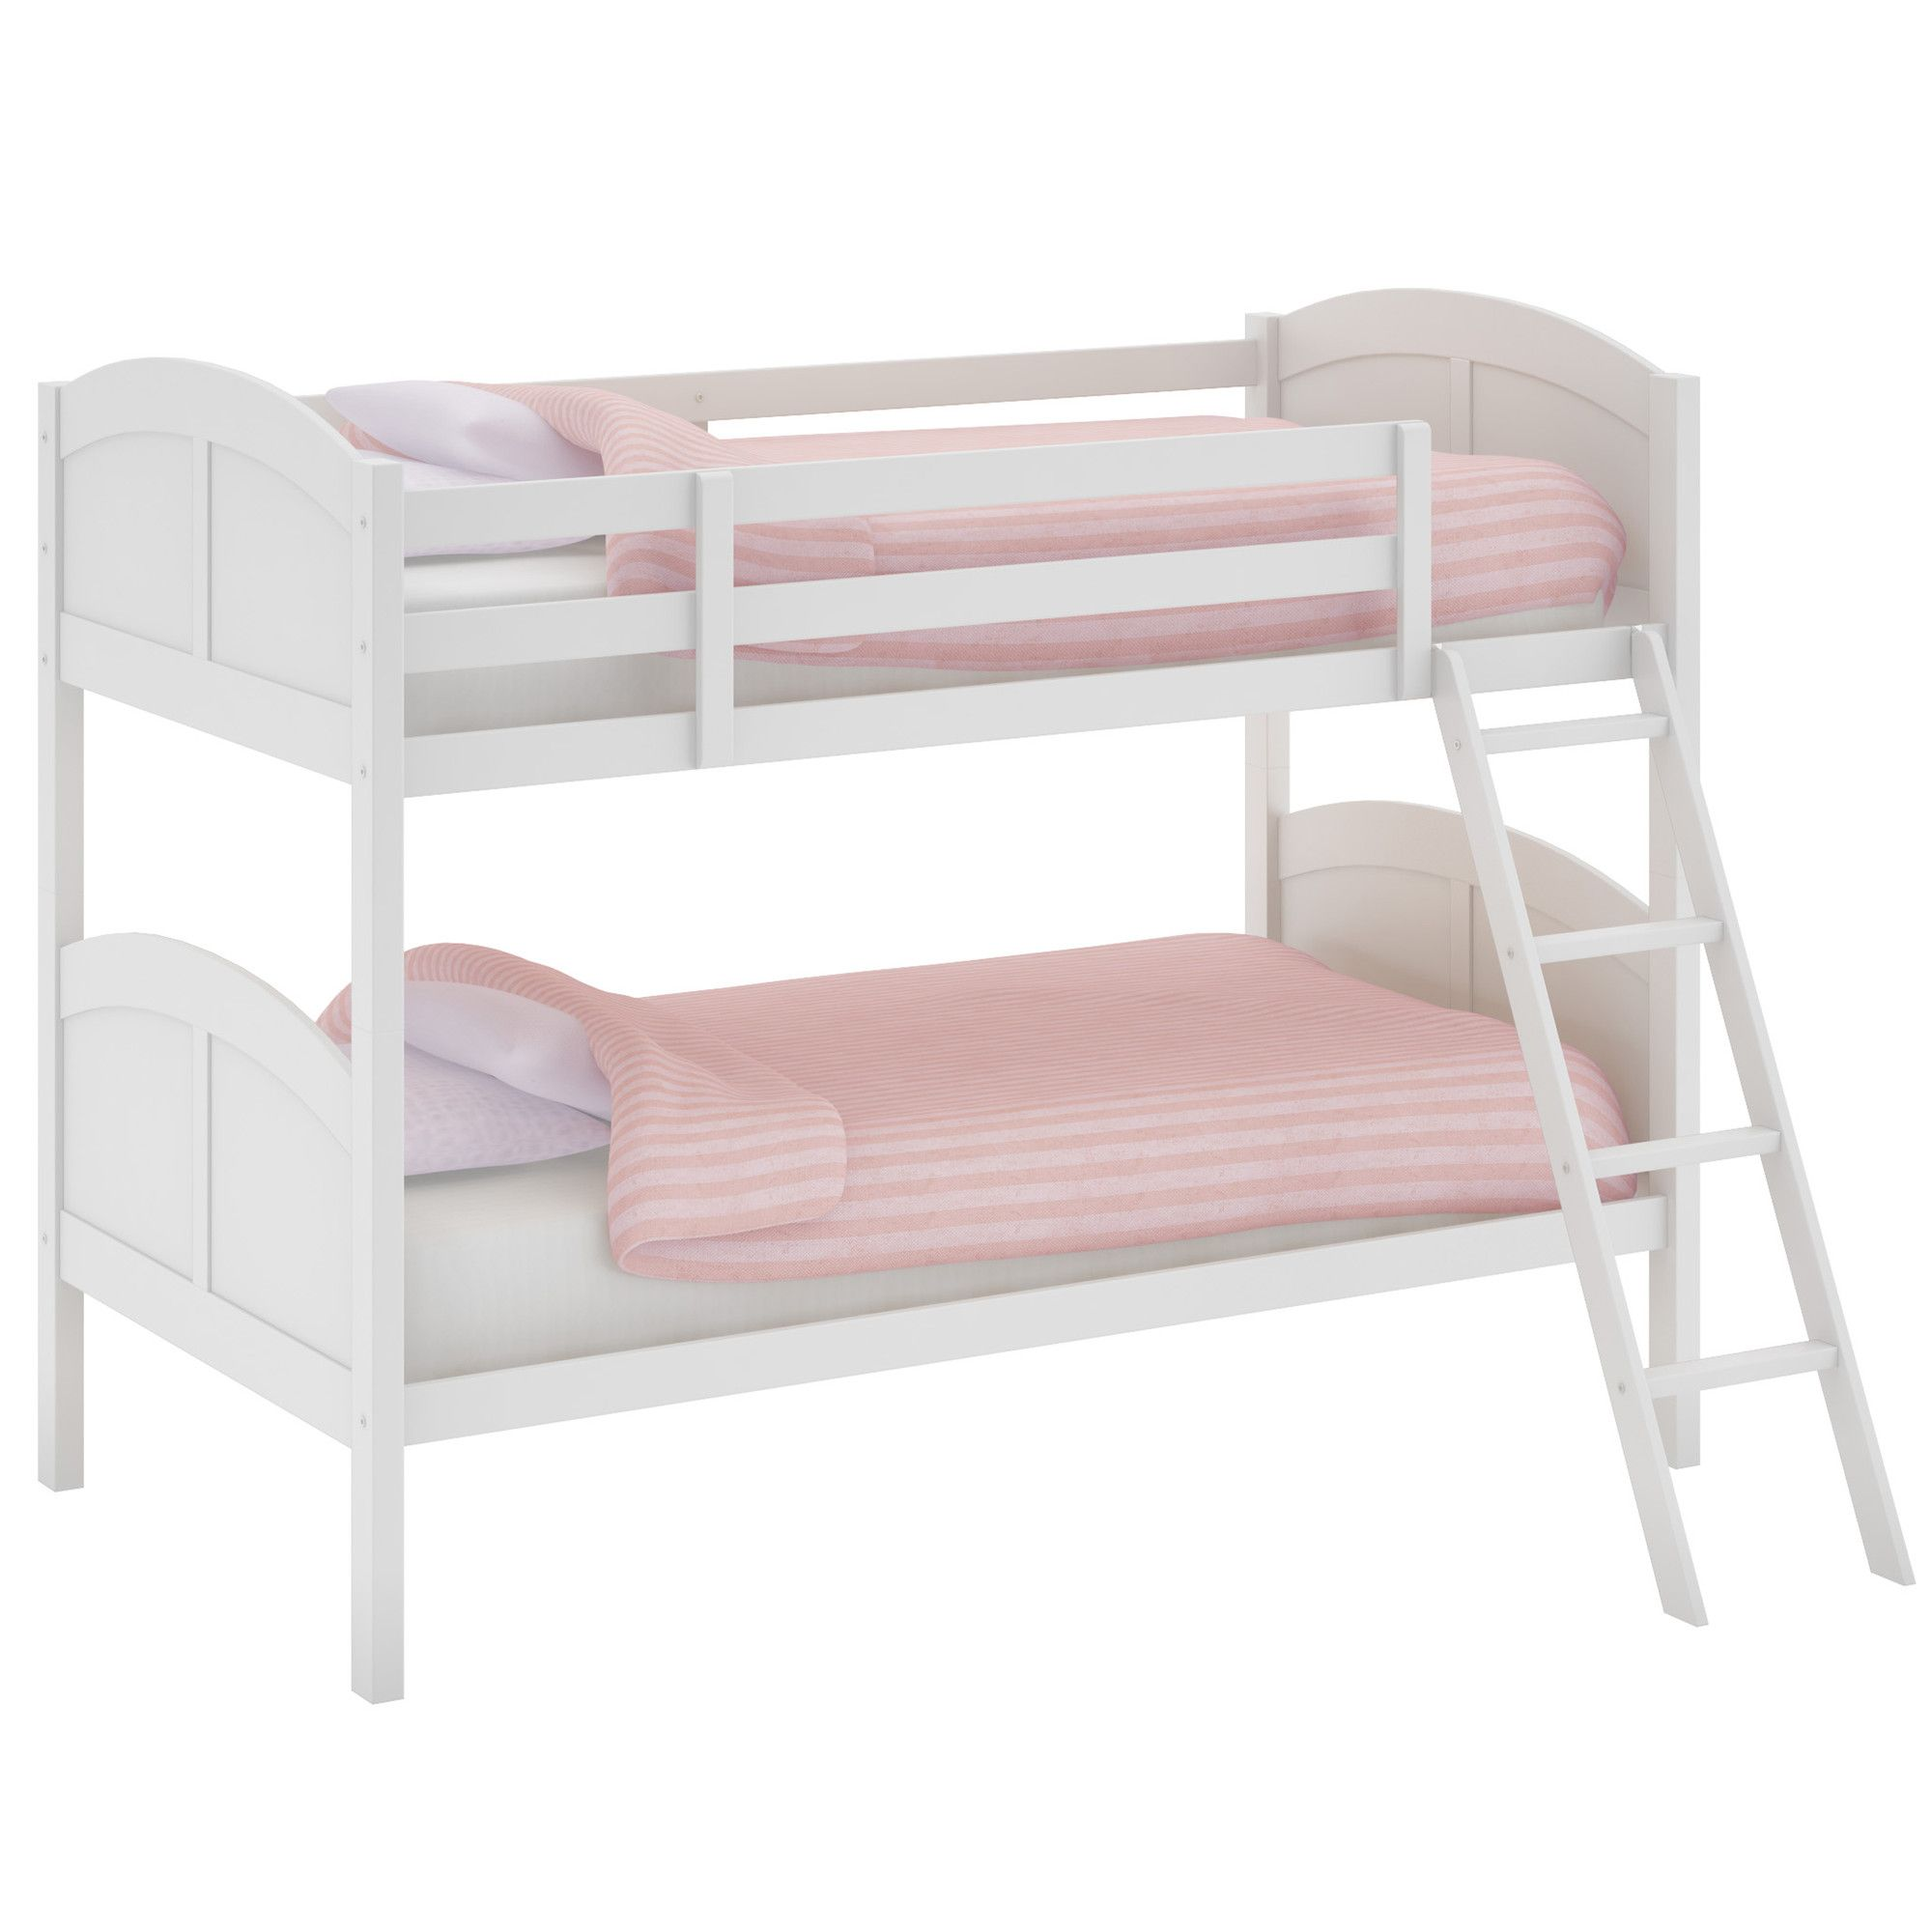 Dcor Design Concordia Twin Bunk Bed With Removable Ladder Reviews